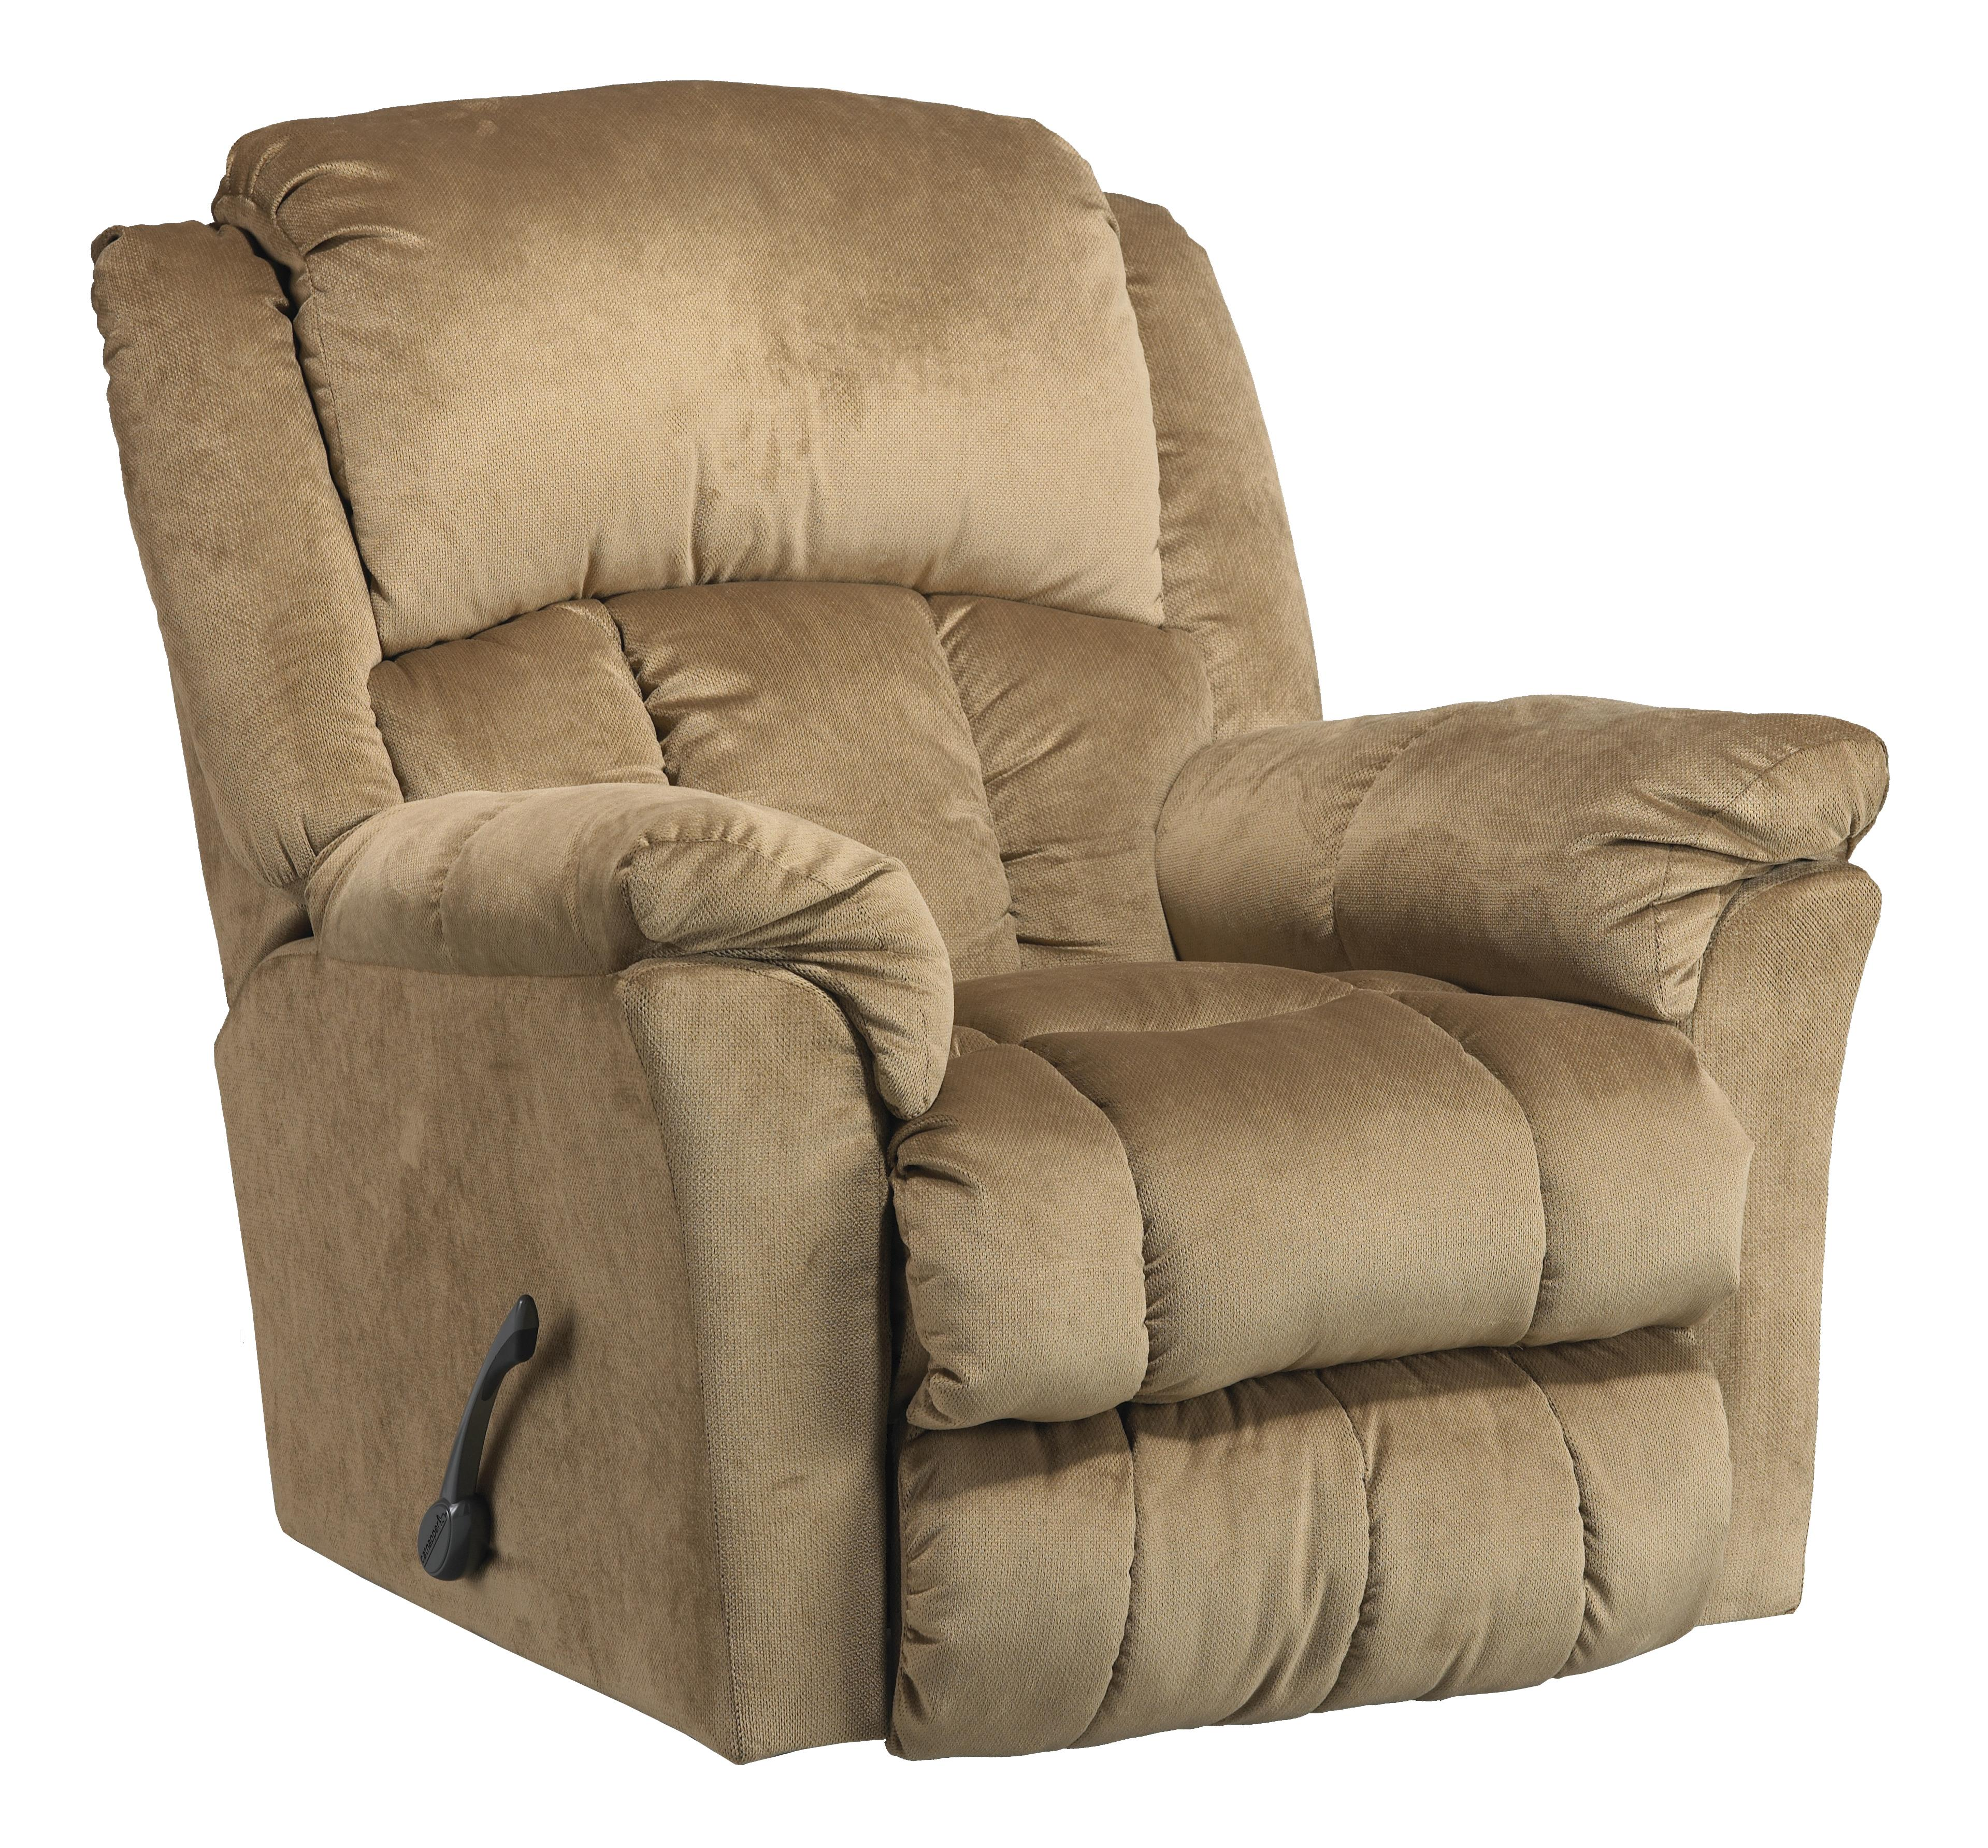 Motion chairs and recliners gibson lay flat recliner by for Catnapper gibson chaise recliner